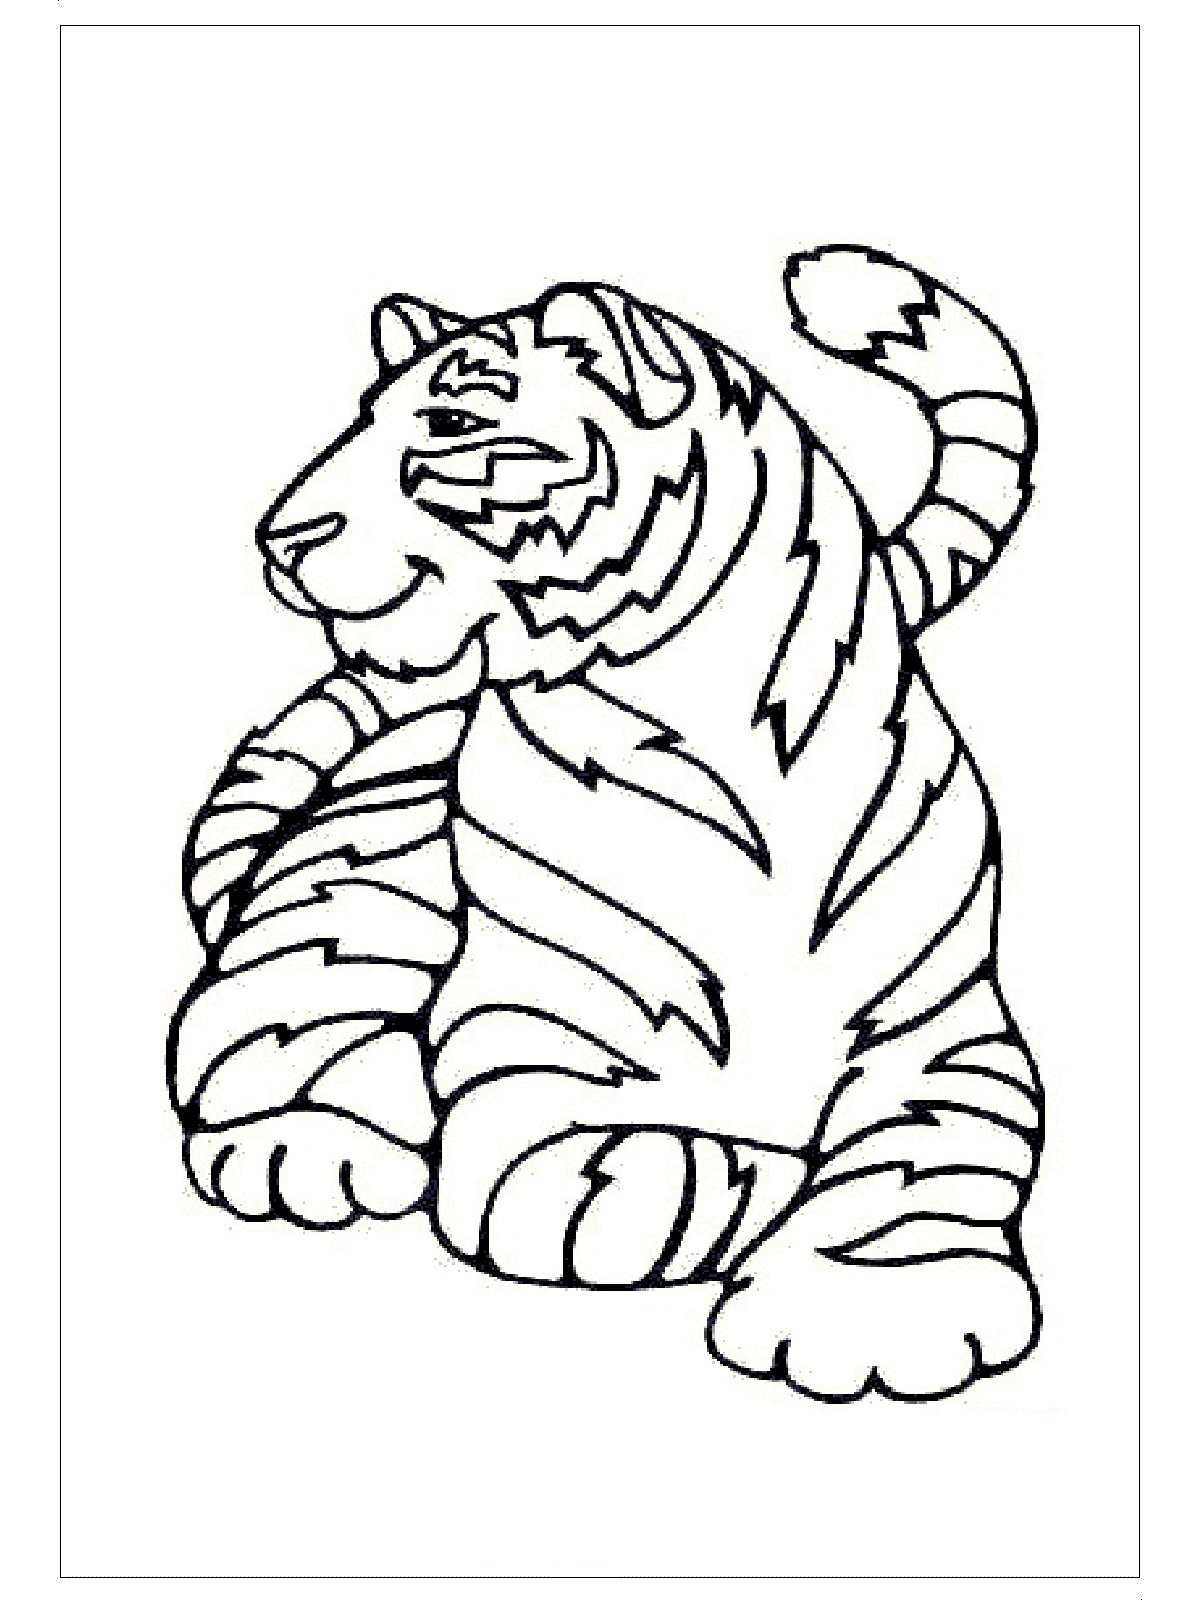 tiger family coloring pages - photo#17